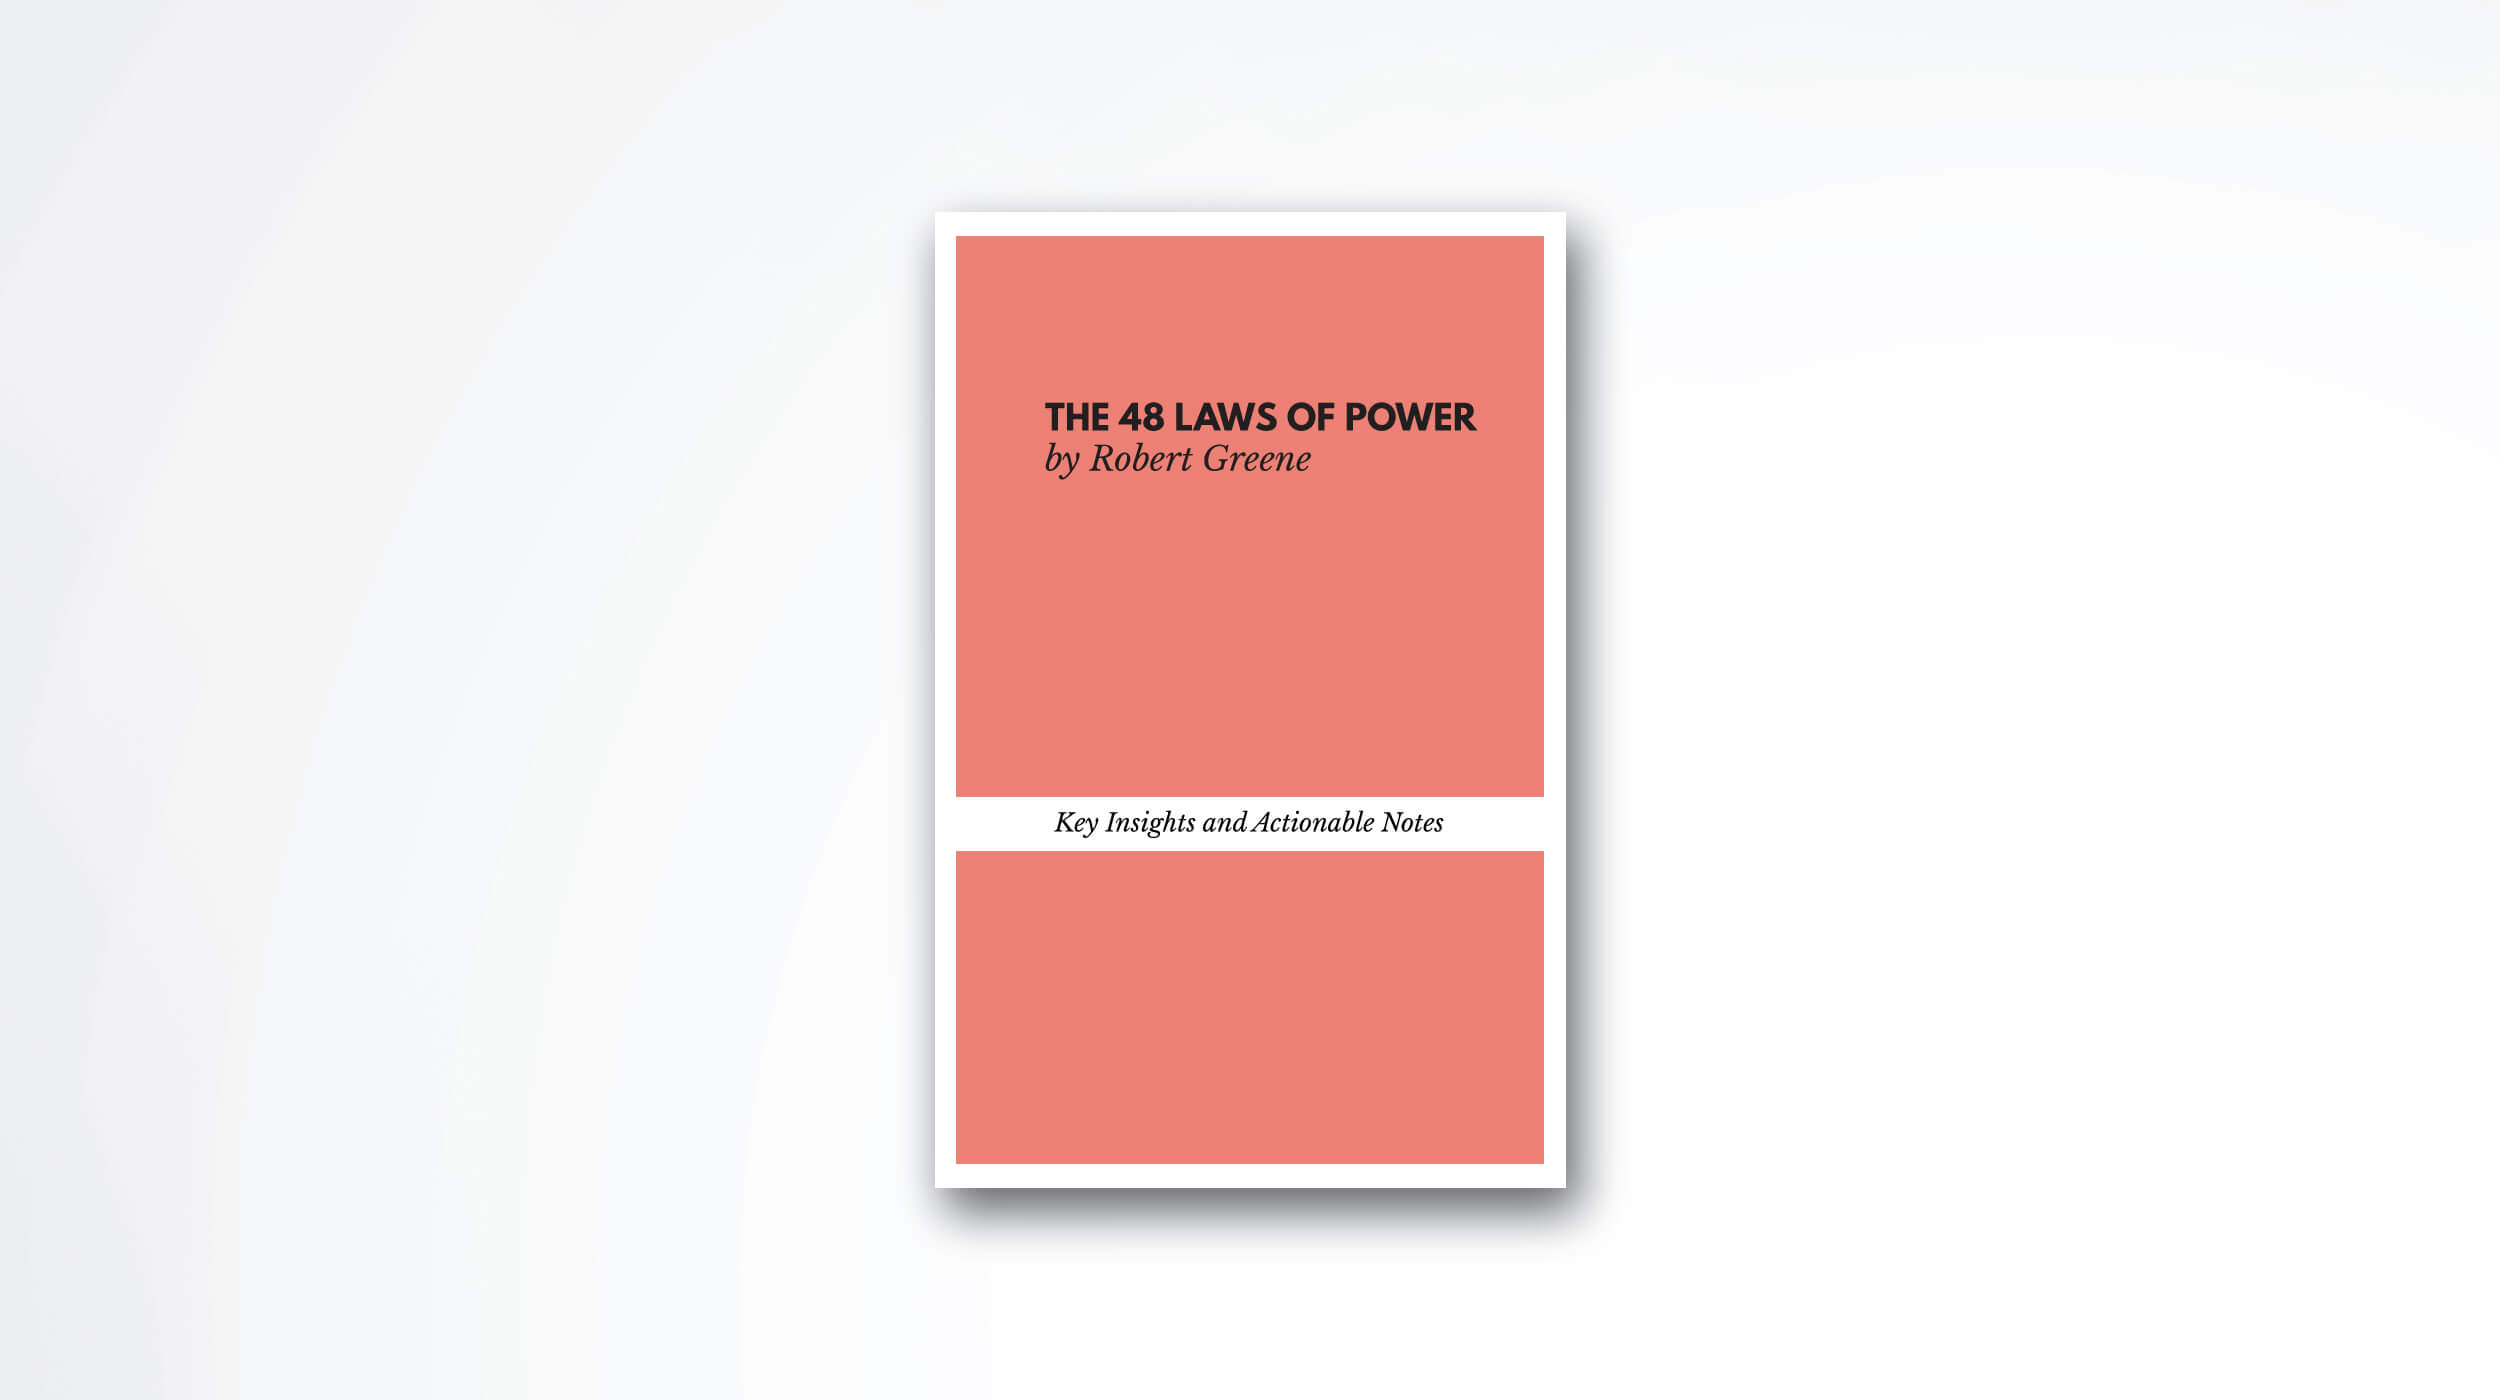 The 48 Laws of Power book summary